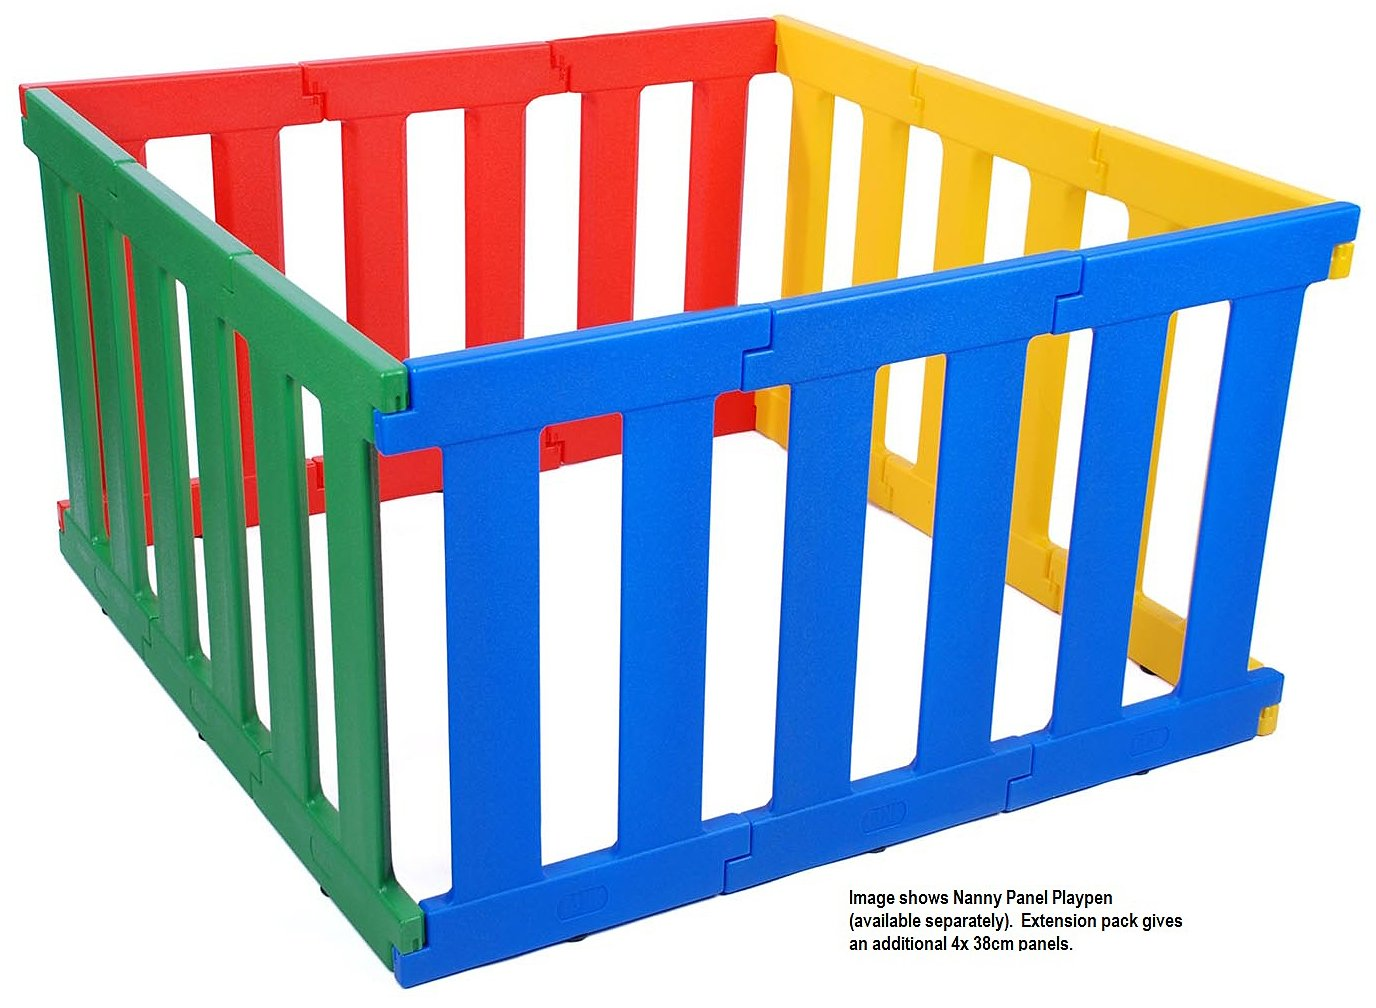 TikkTokk Nanny Panel Playpen Extension Pack (multi-Coloured) TikkTokk Extension Pack for the Nanny Panel Play Pen (TNP01C) - contains 4 panels each 38cm wide One extension pack will increase Playpen to 152cm x 152cm 2 year manufacturer's guarantee 5